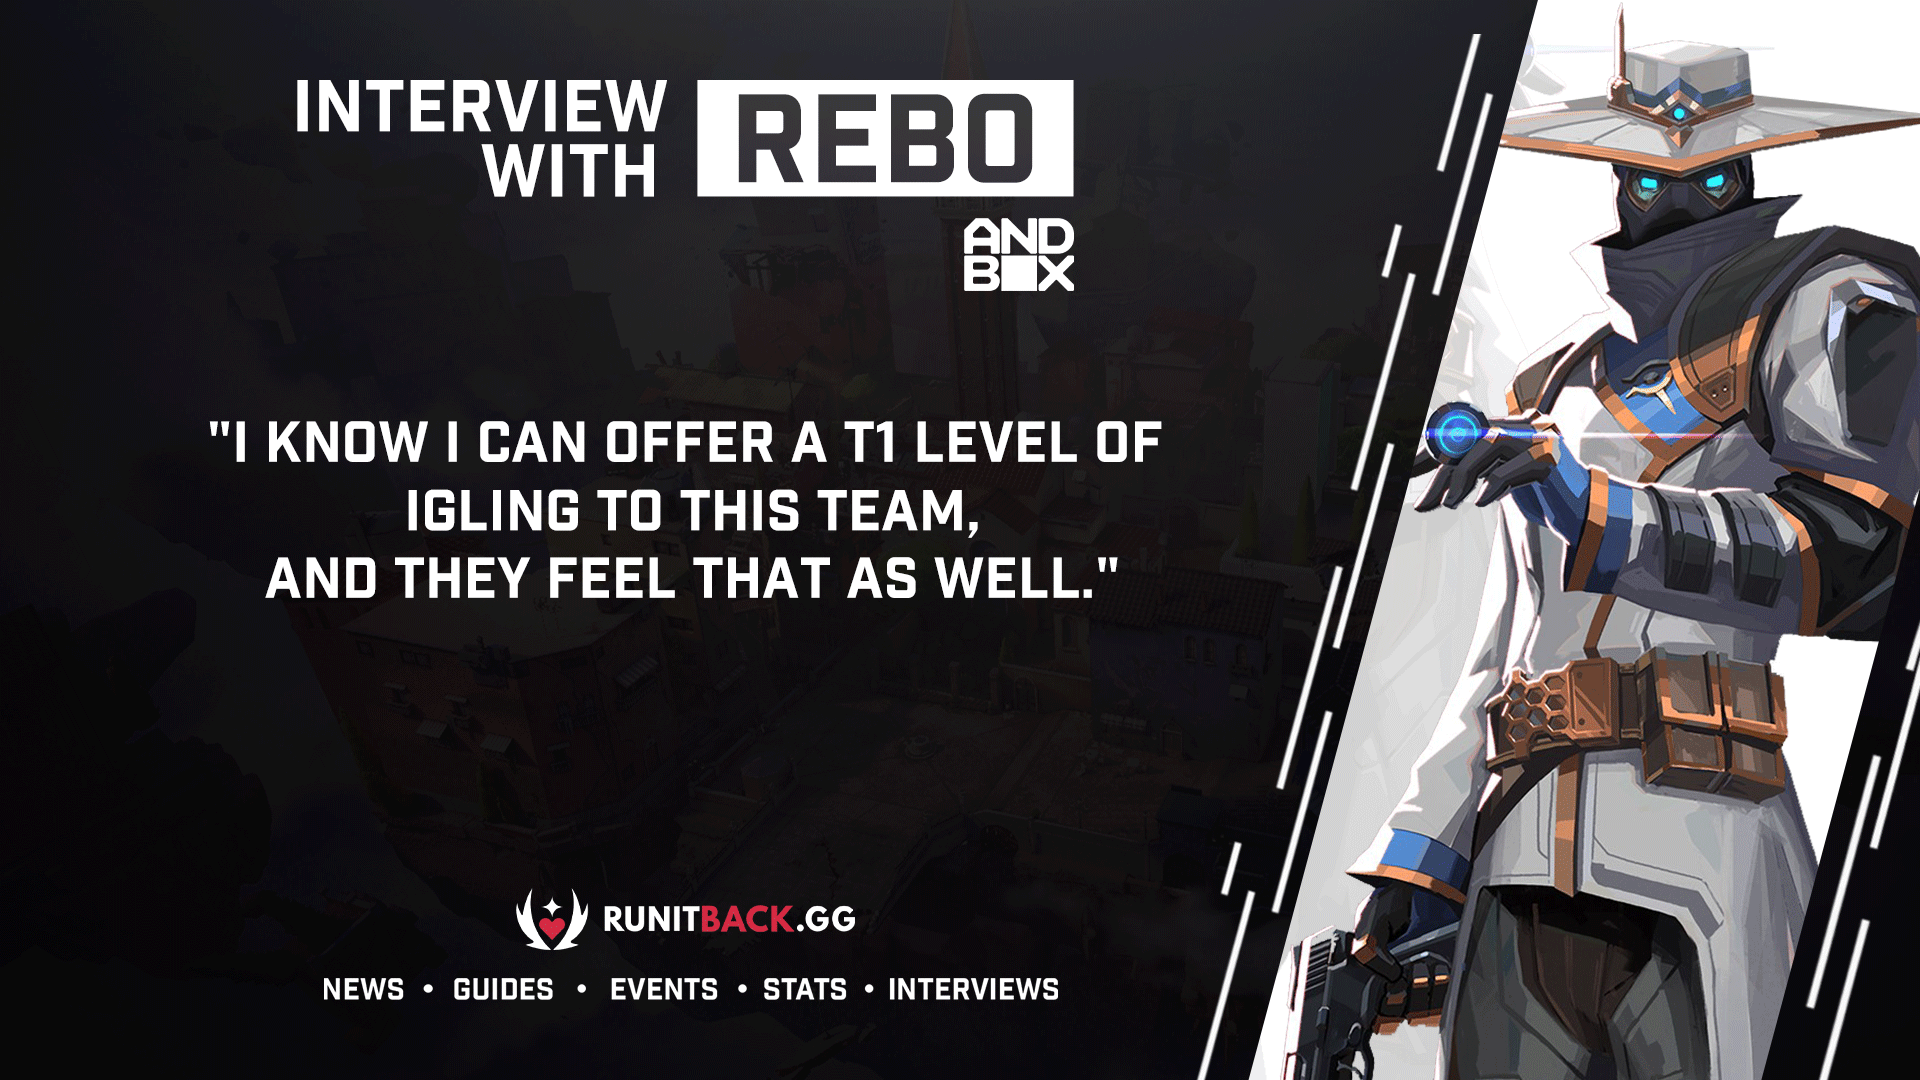 Rebo on joining Andbox and keeping the Moon Raccoons spirit alive